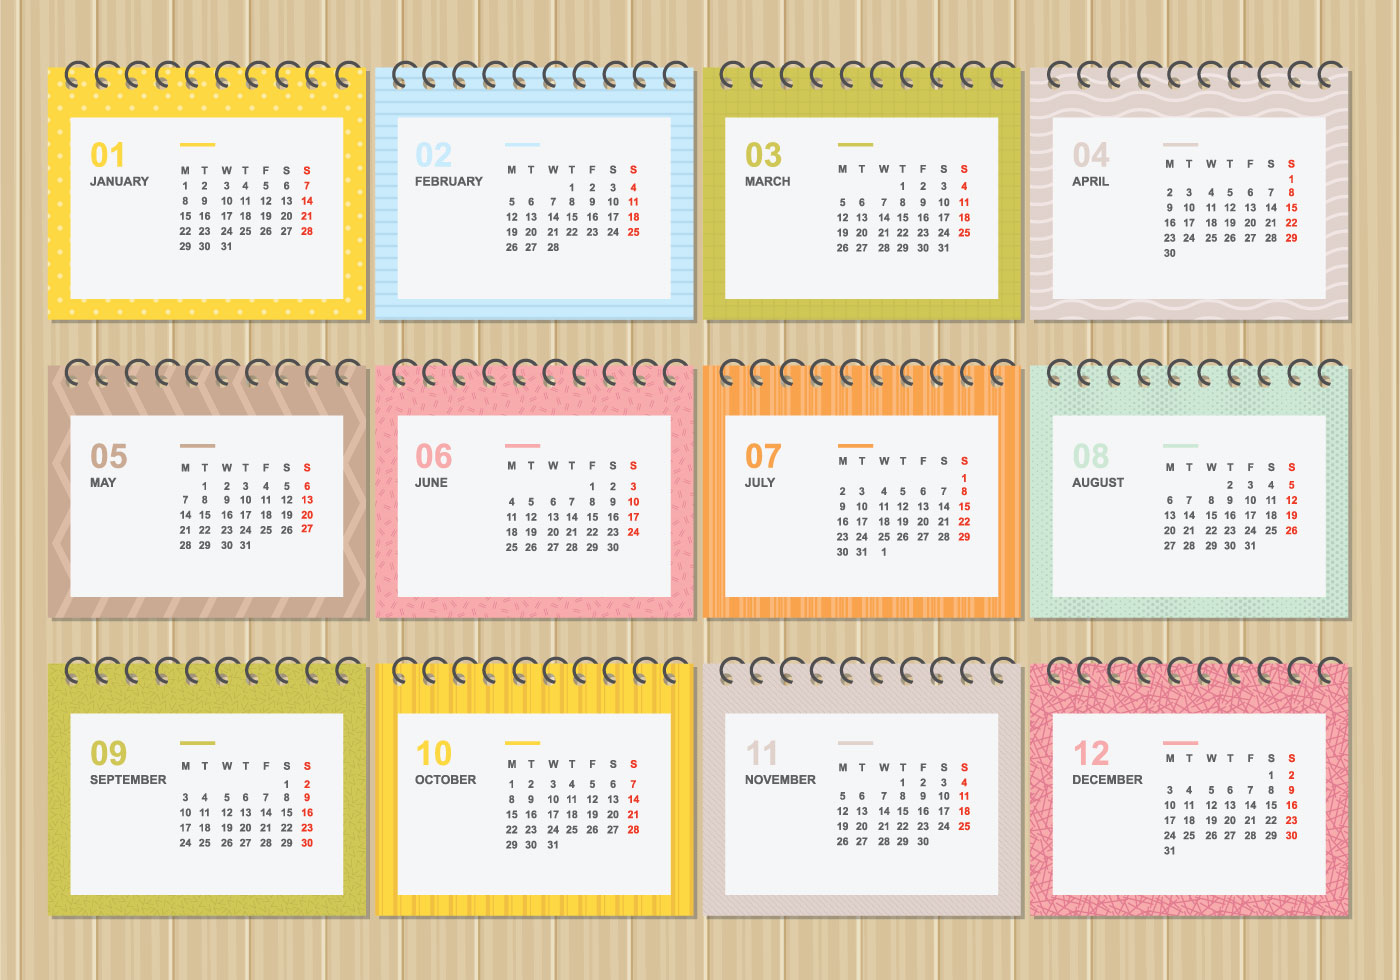 2018 calendar free vector art 2111 free downloads